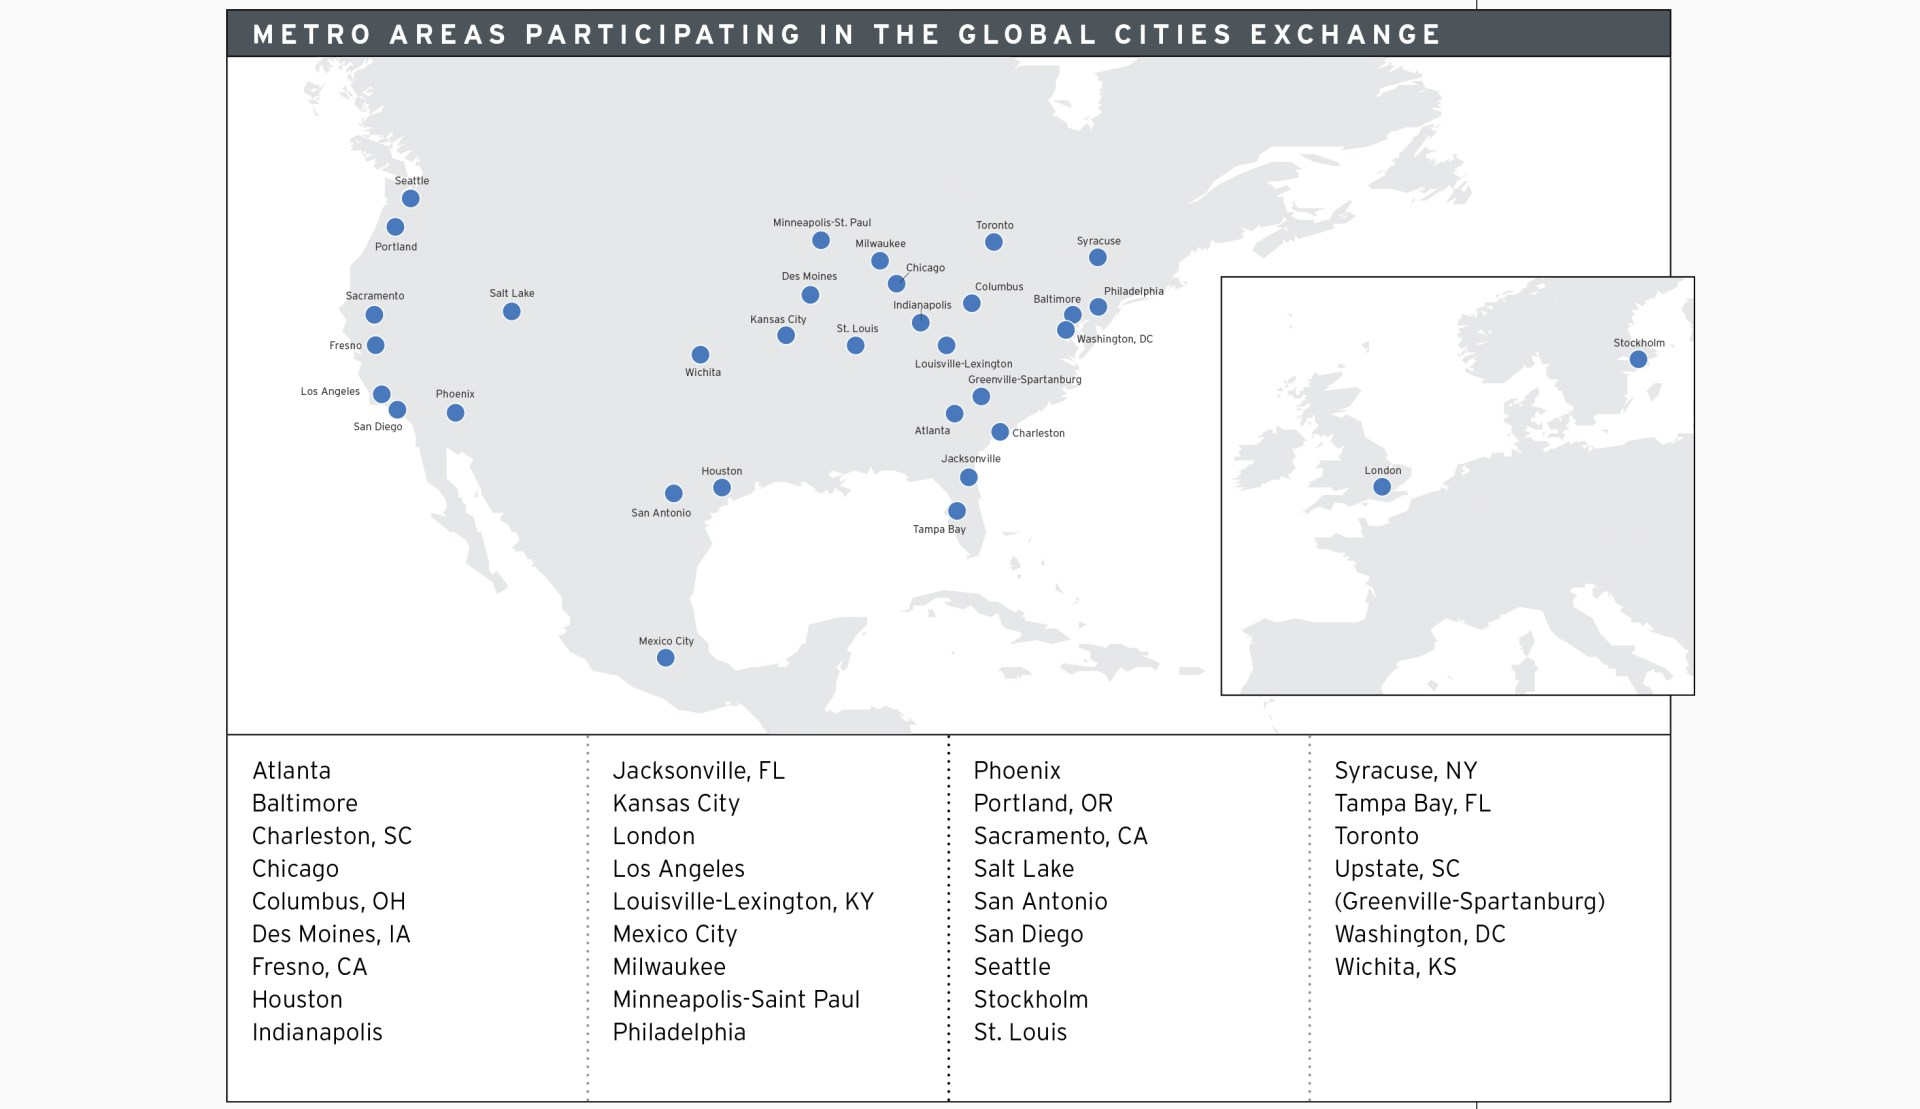 Cities participating in the Global Cities Exchange